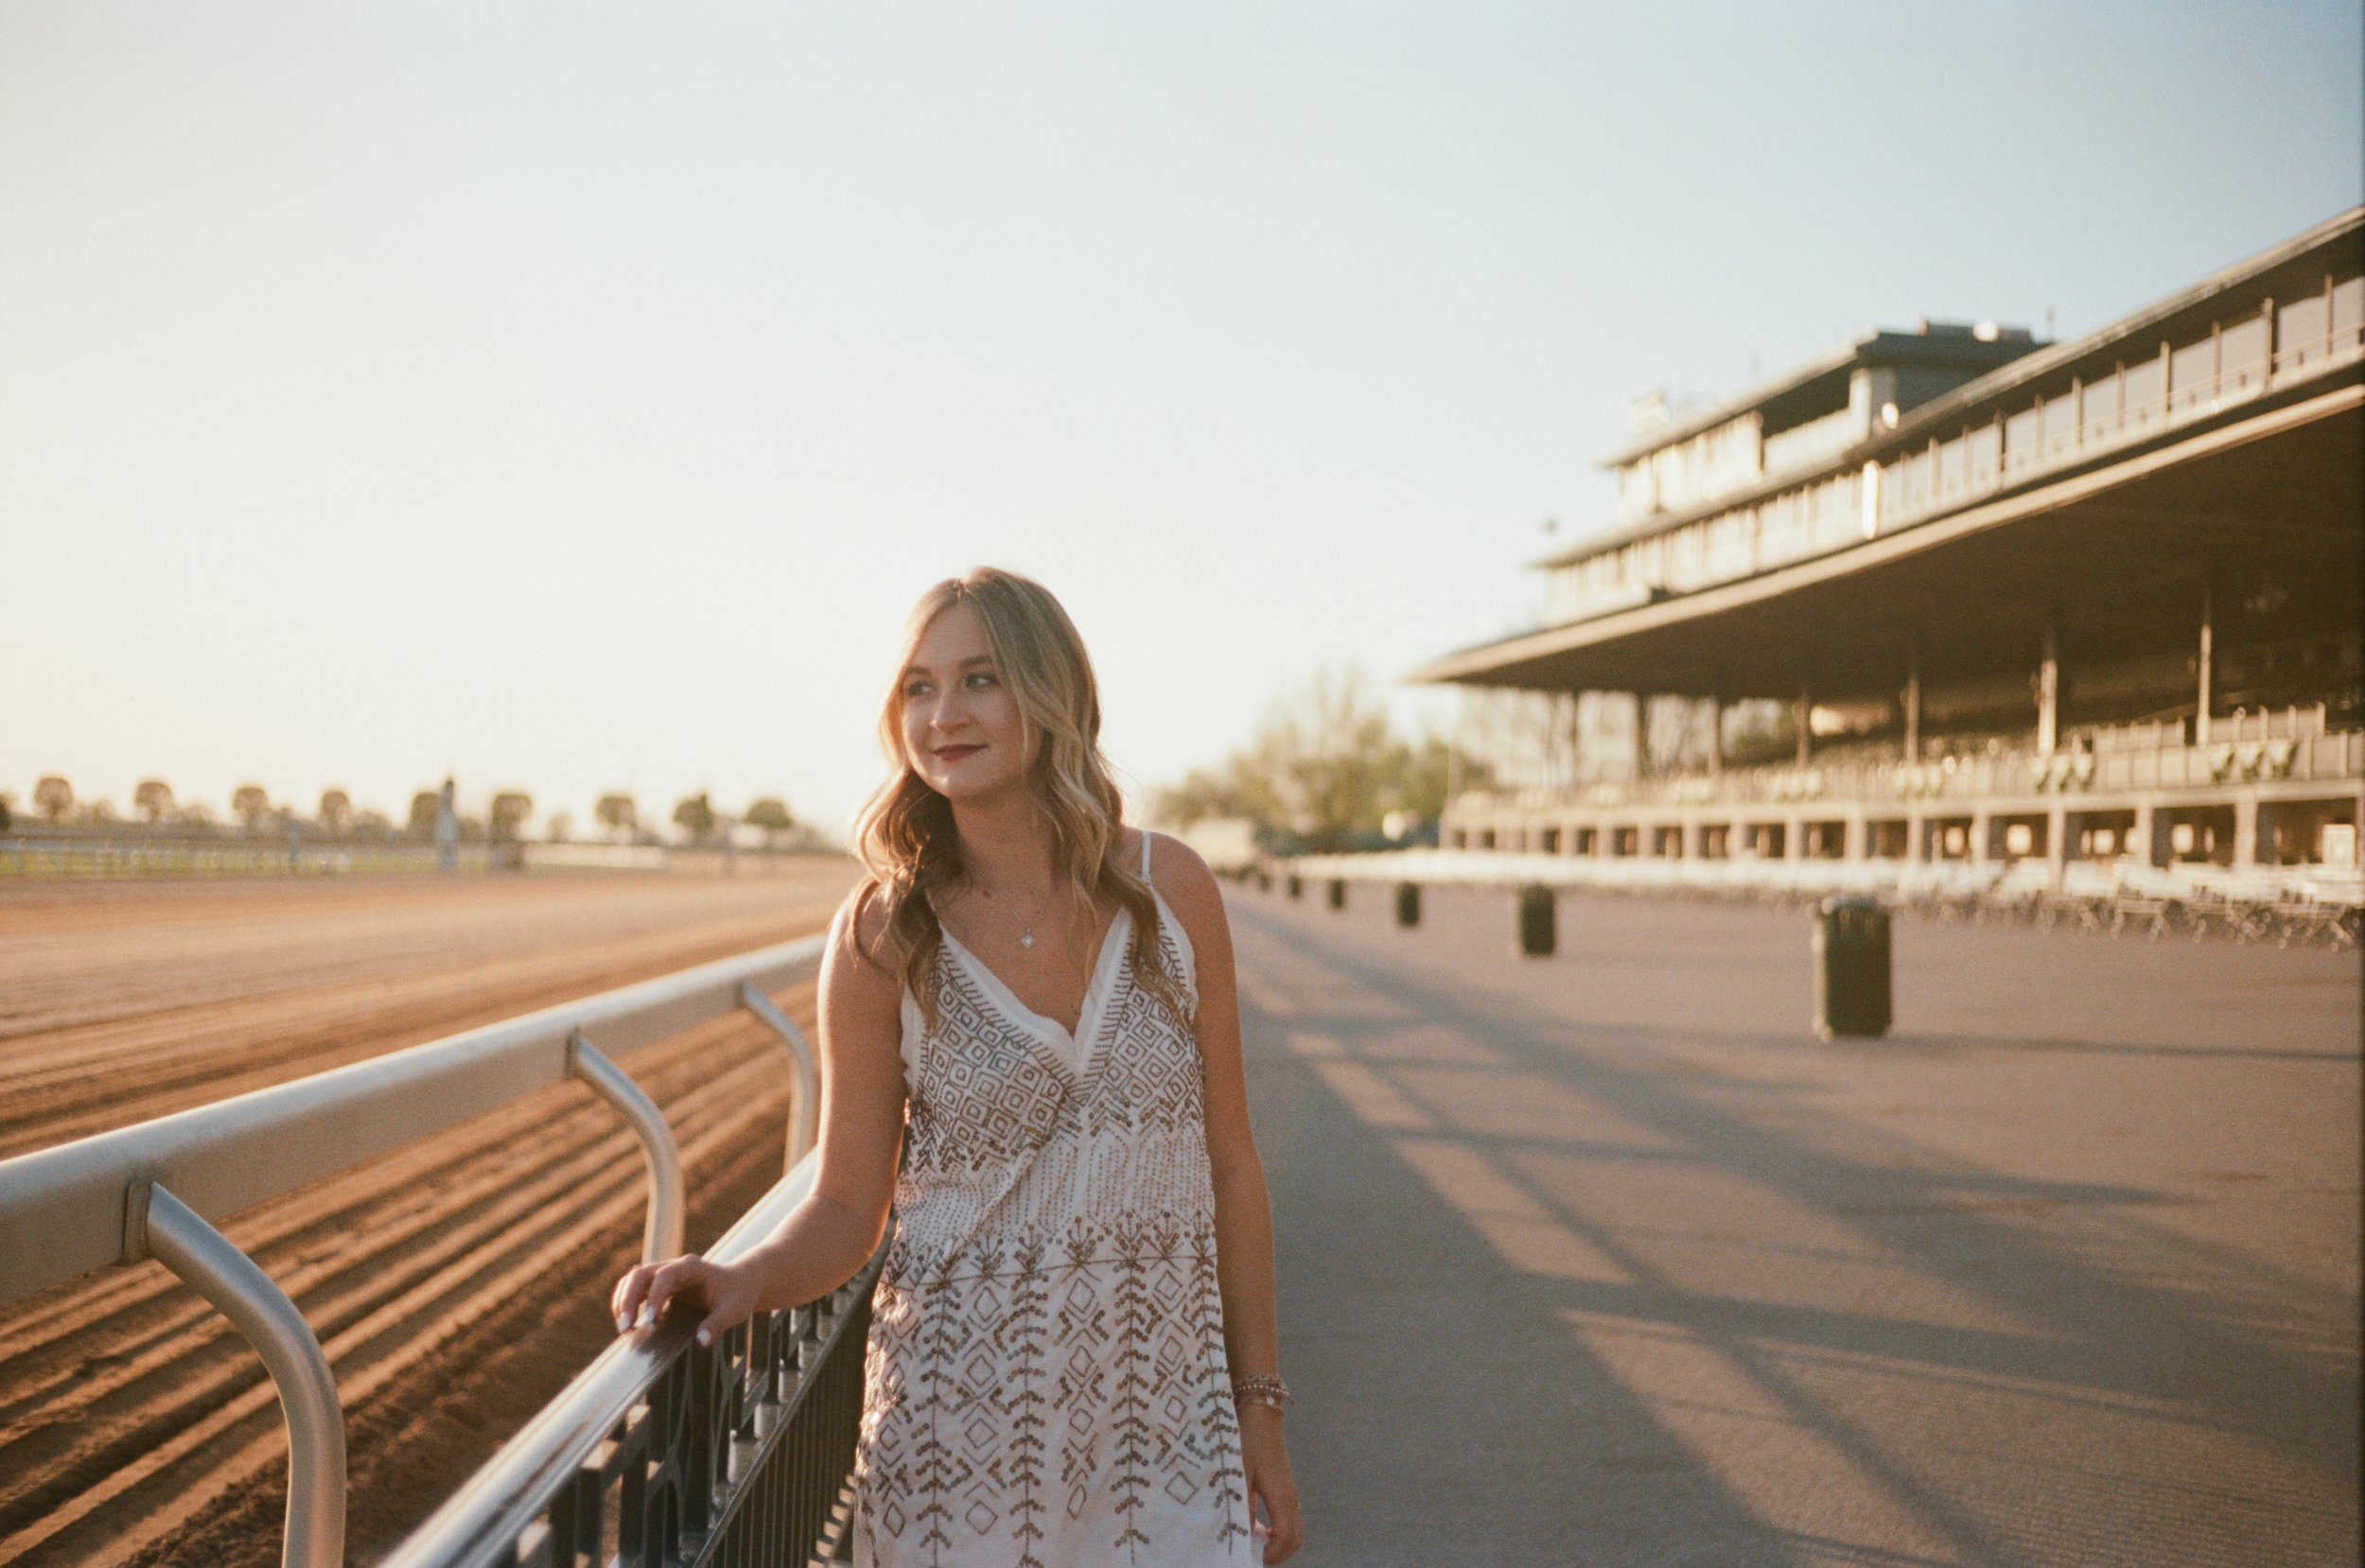 Elise at Keeneland on Portra 160 35 mm film